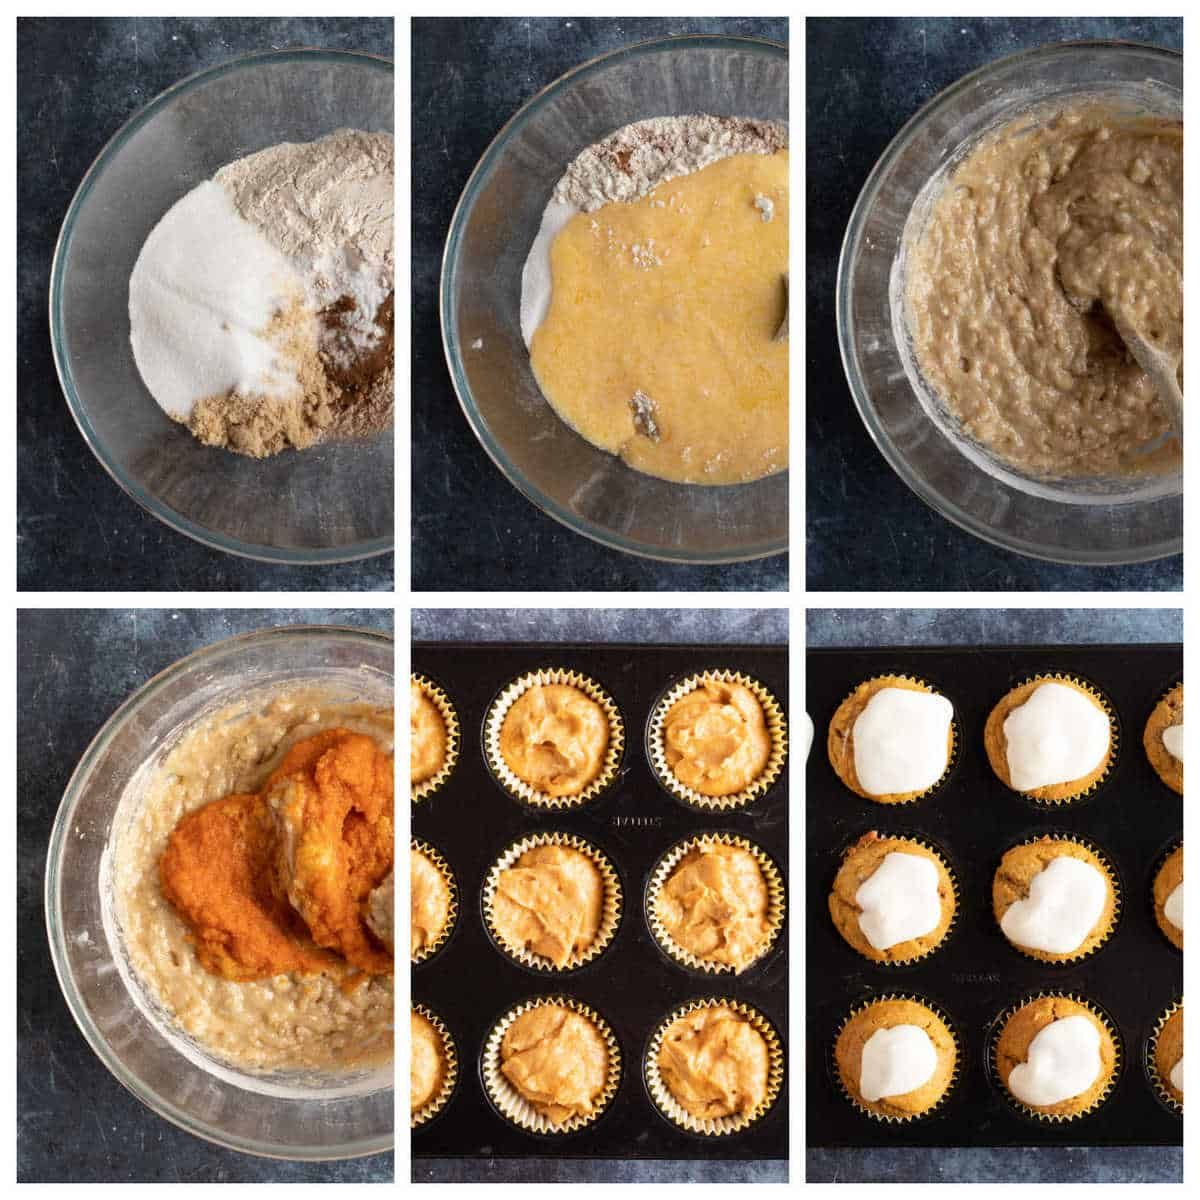 Step by step photo instructions for making cinnamon spiced pumpkin muffins with cream cheese frosting.